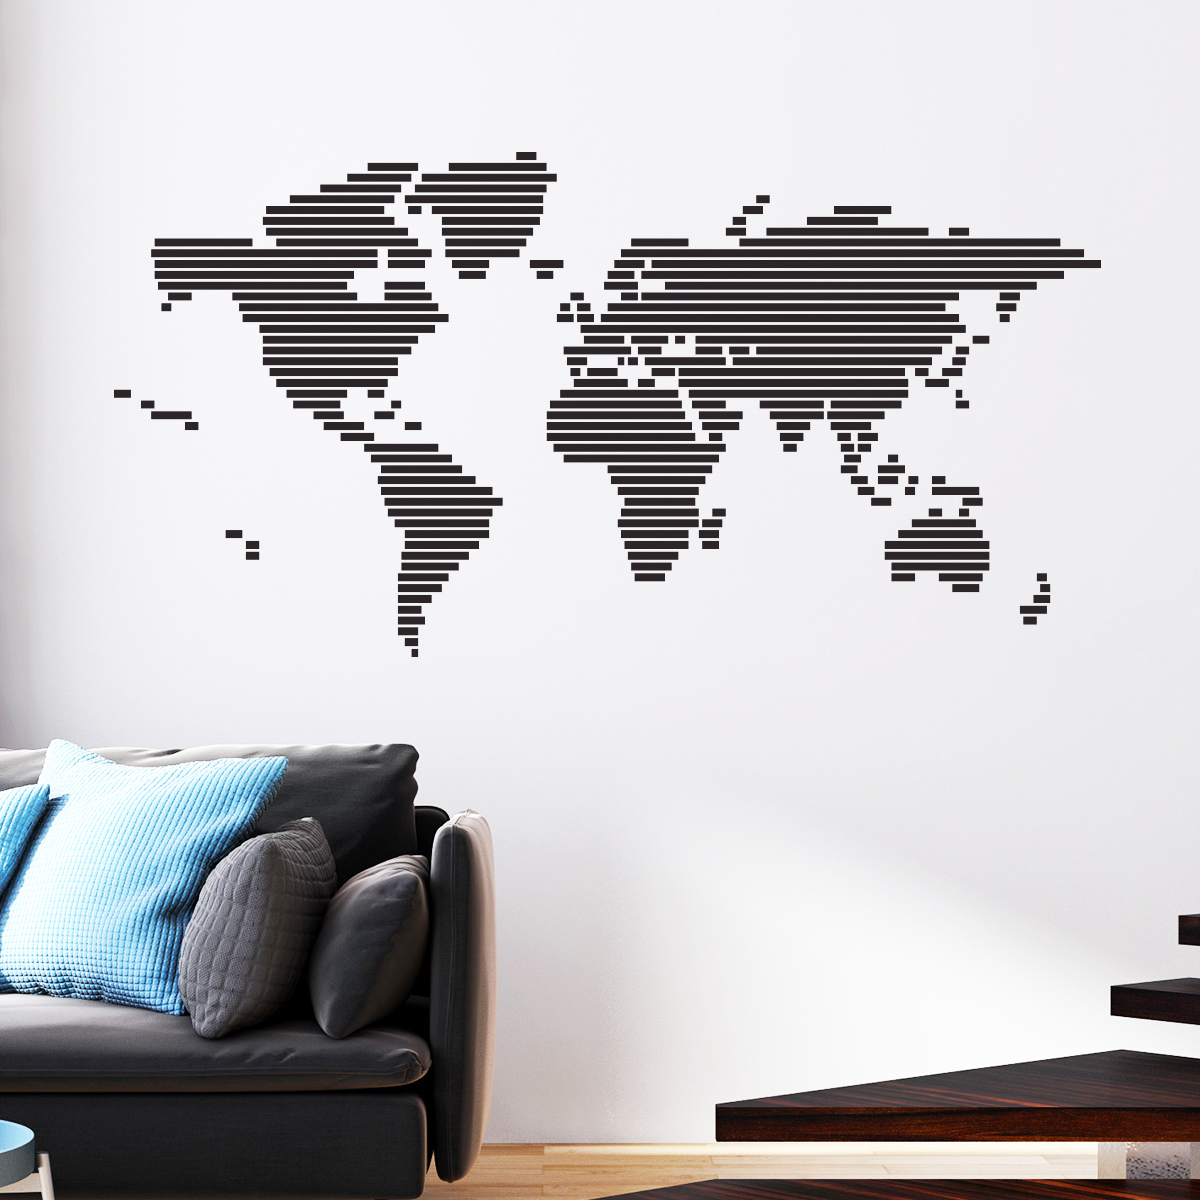 carte du monde stickers muraux pays et villes. Black Bedroom Furniture Sets. Home Design Ideas